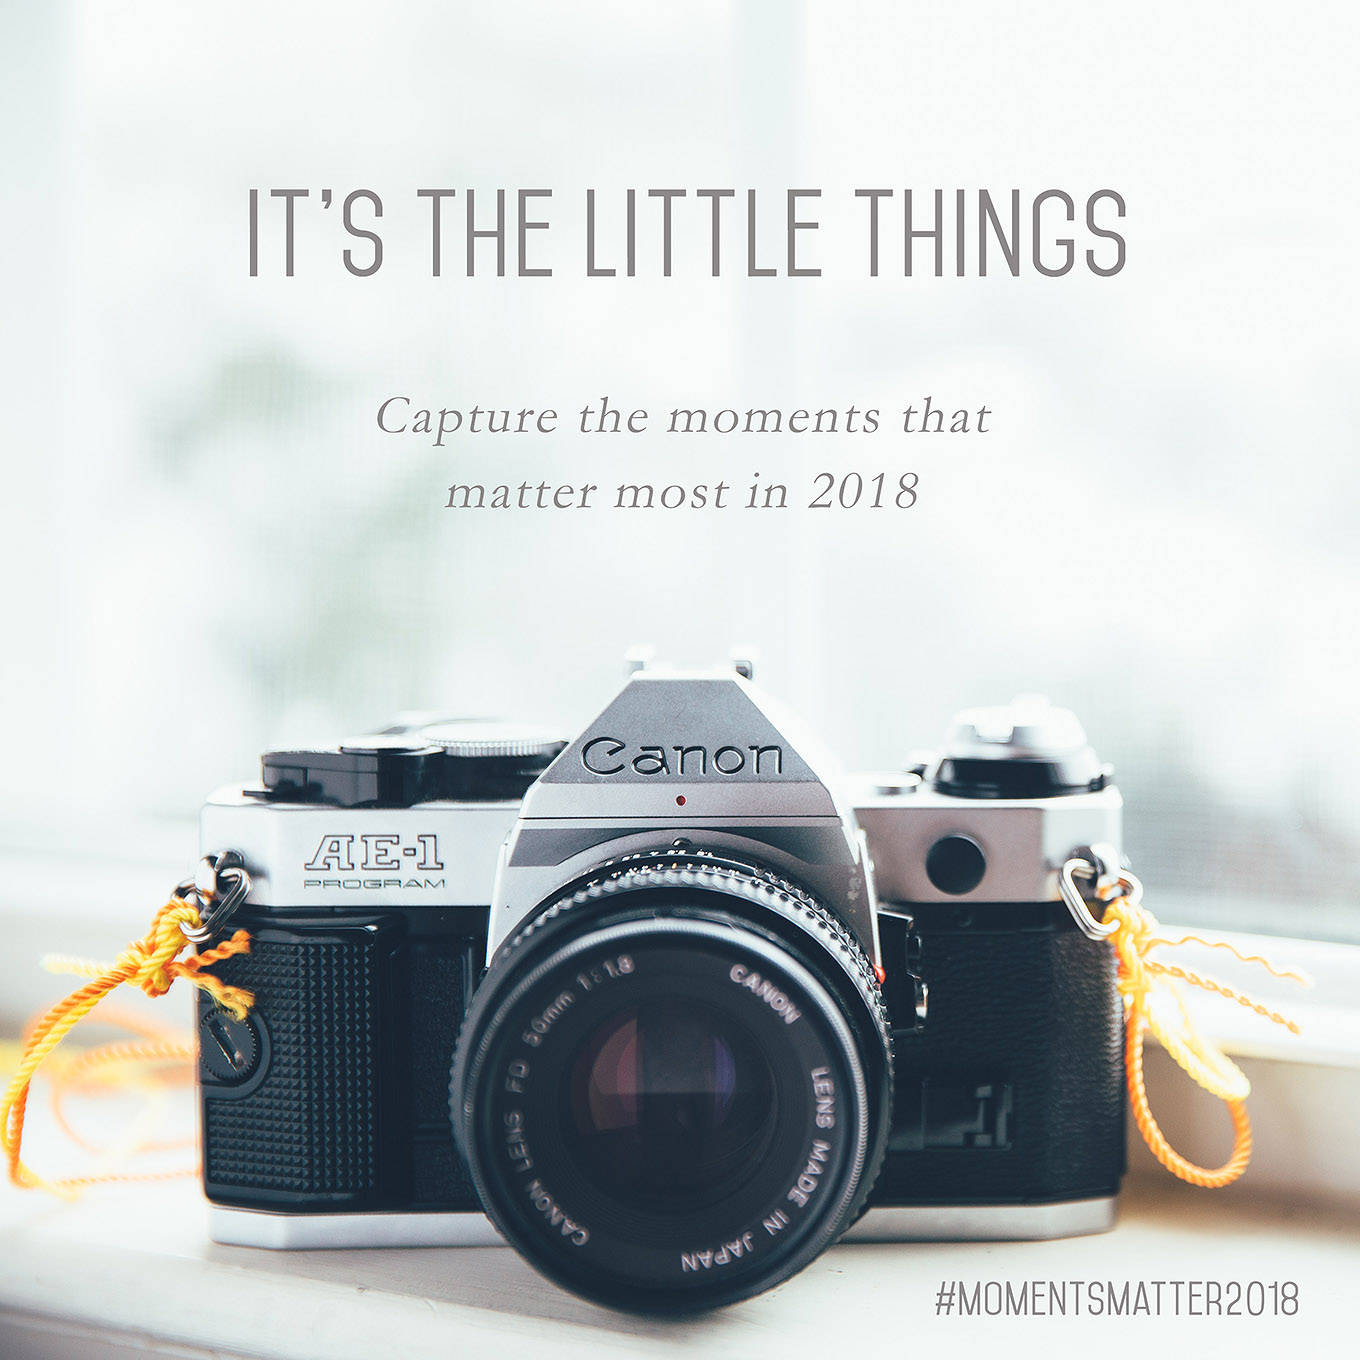 Photography has so much power to connect us to the beauty and joy in our lives that is often too easy to overlook. This year, I invite you to change that by joining in on a new, meaningful photo challenge.